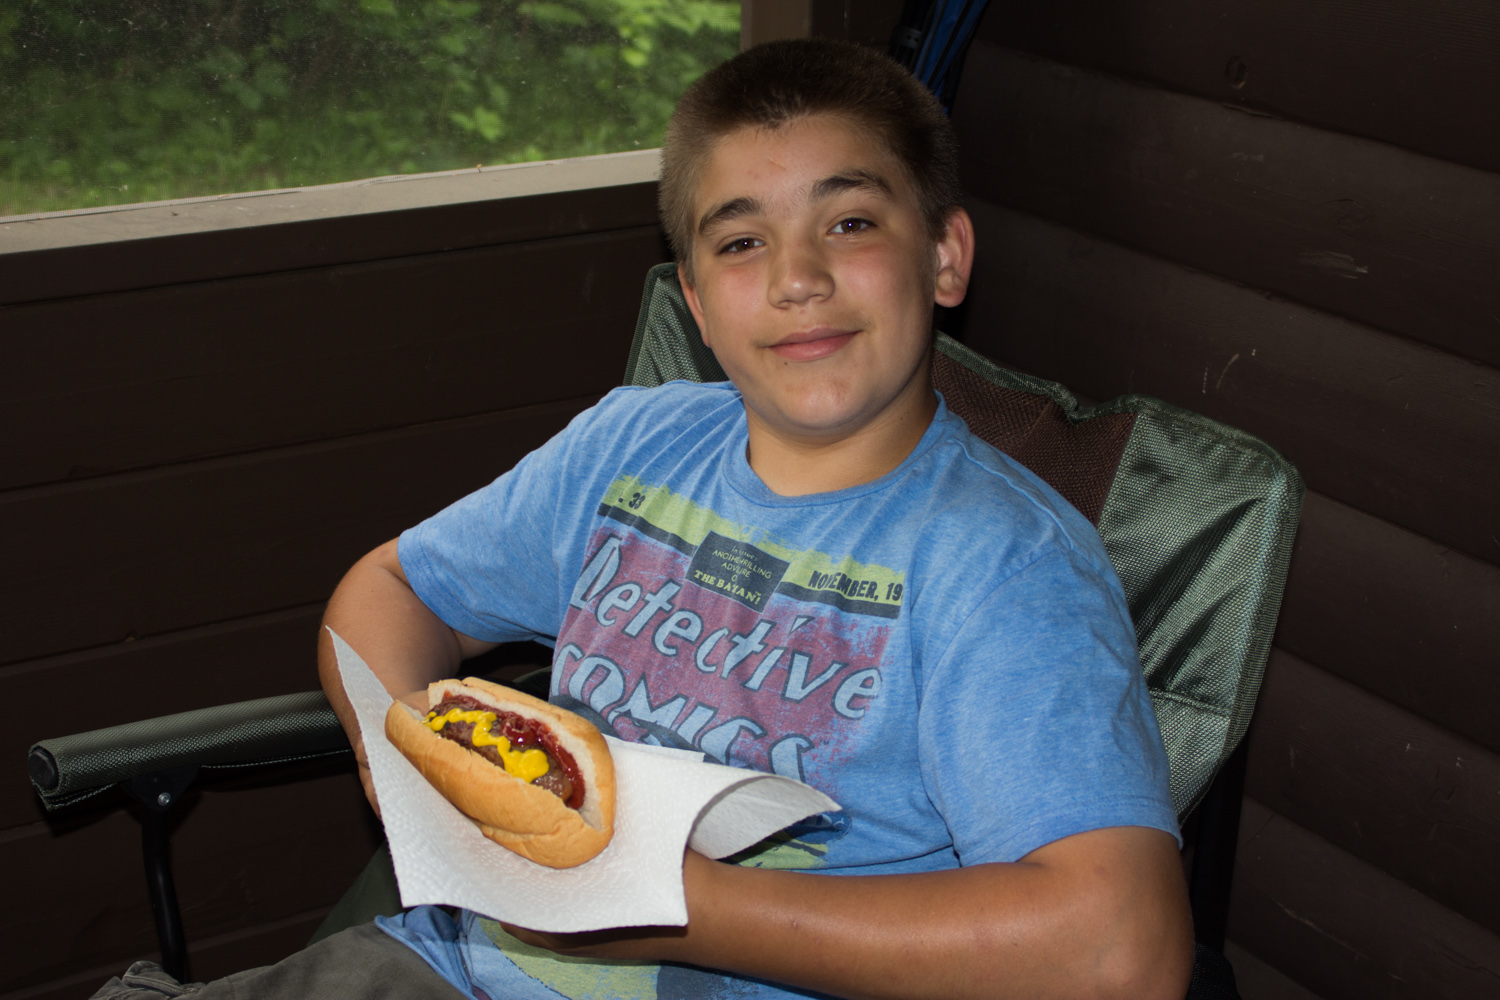 Ben eating lunch on Saturday inside the screen porch of the cabin.